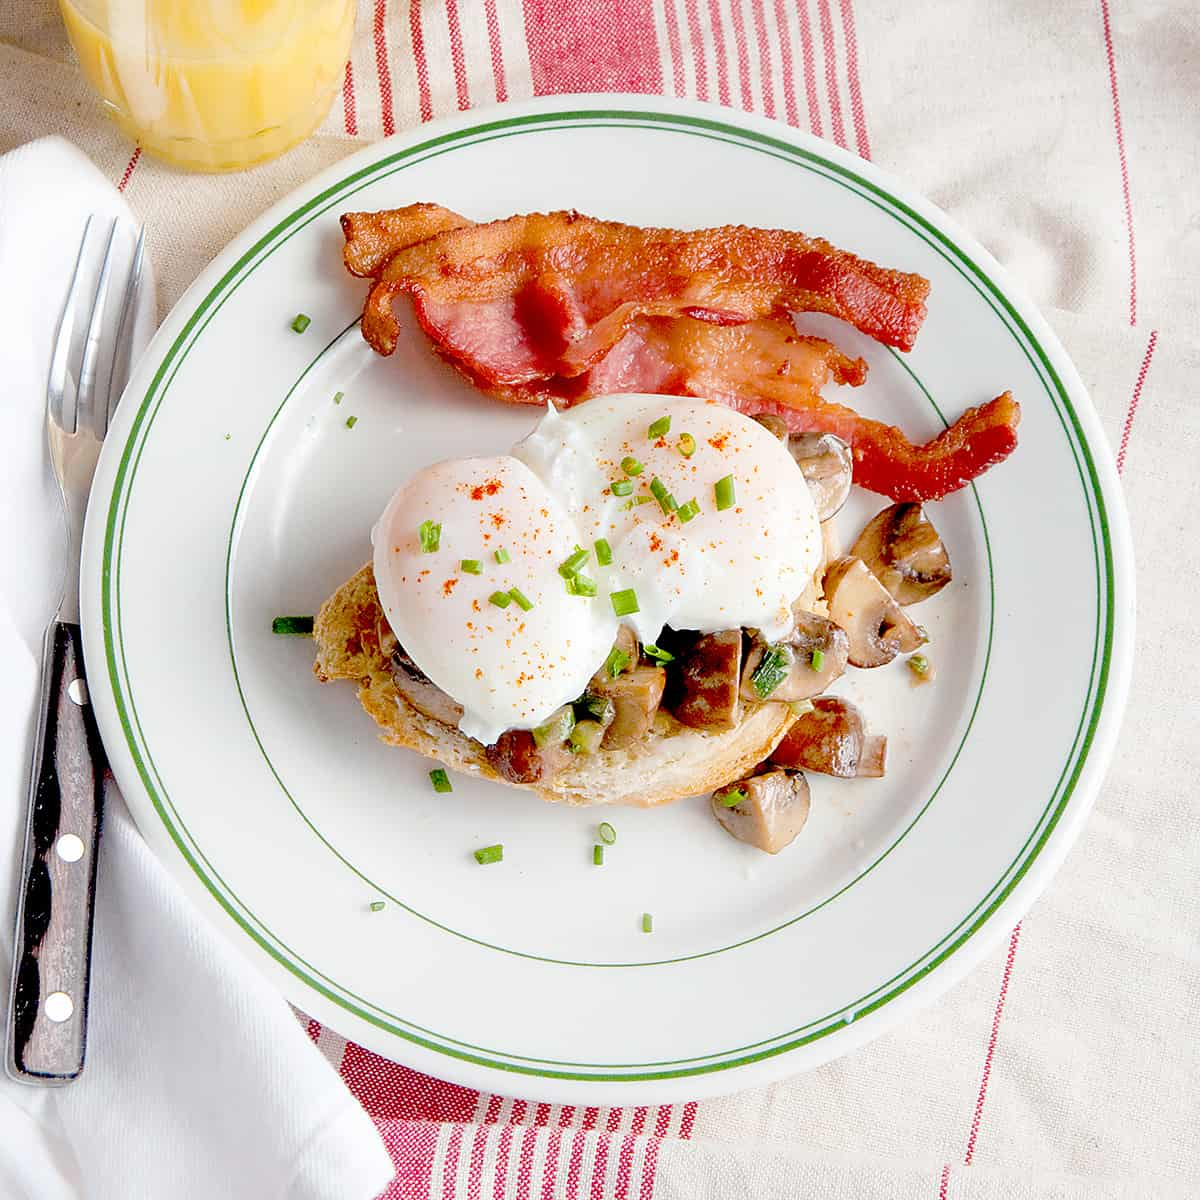 A serving of creamed mushrooms and poached eggs with a side of bacon on a serving plate.